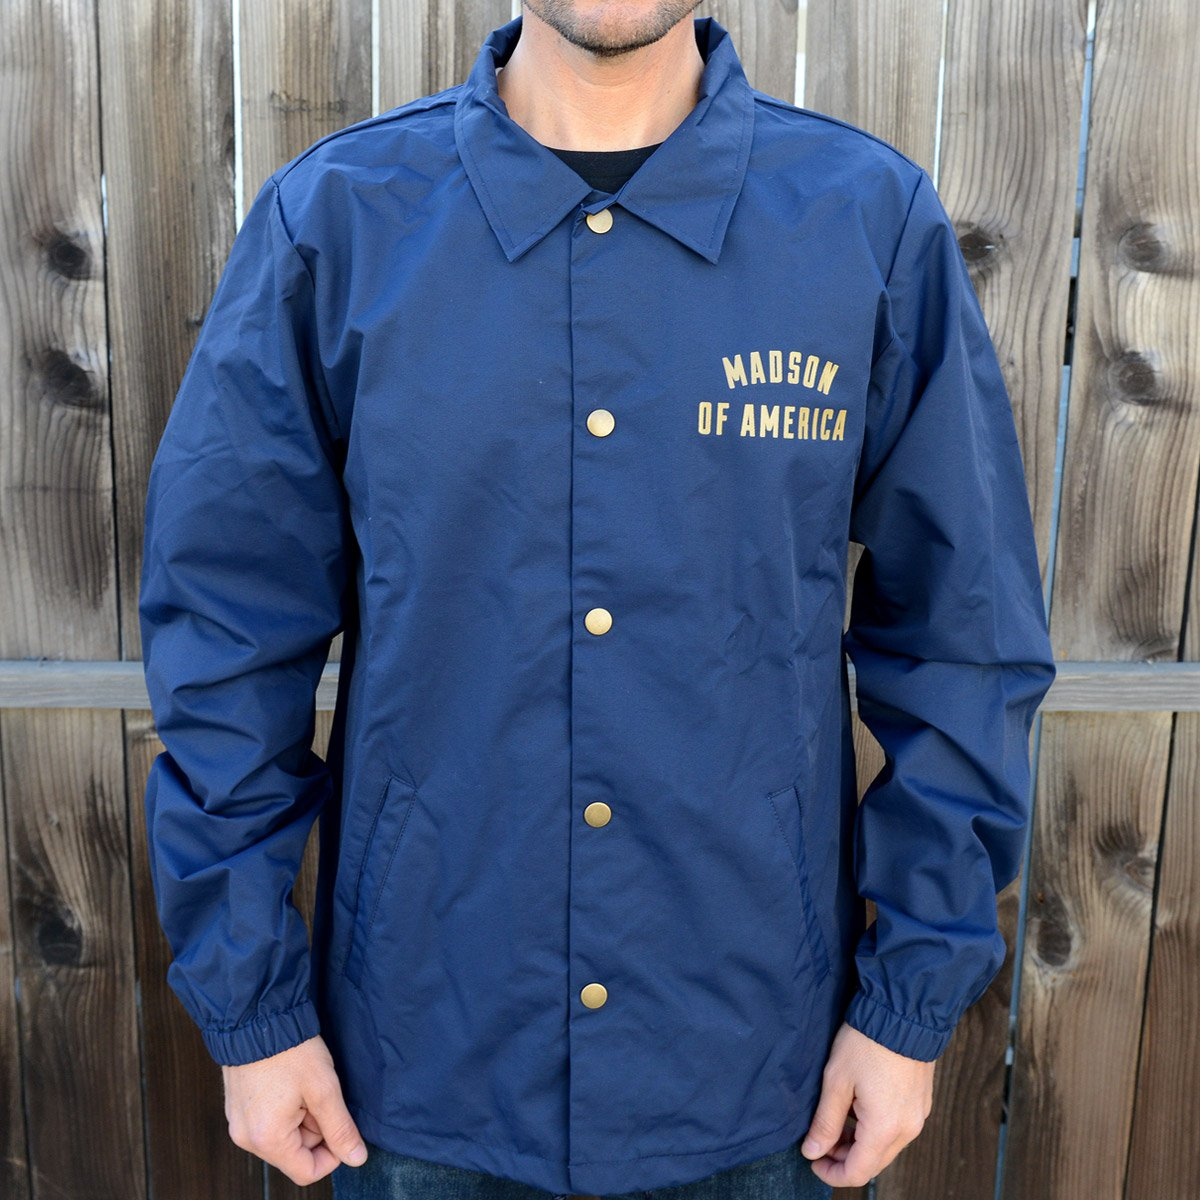 e5b83e797895 Keyston Coaches Jacket